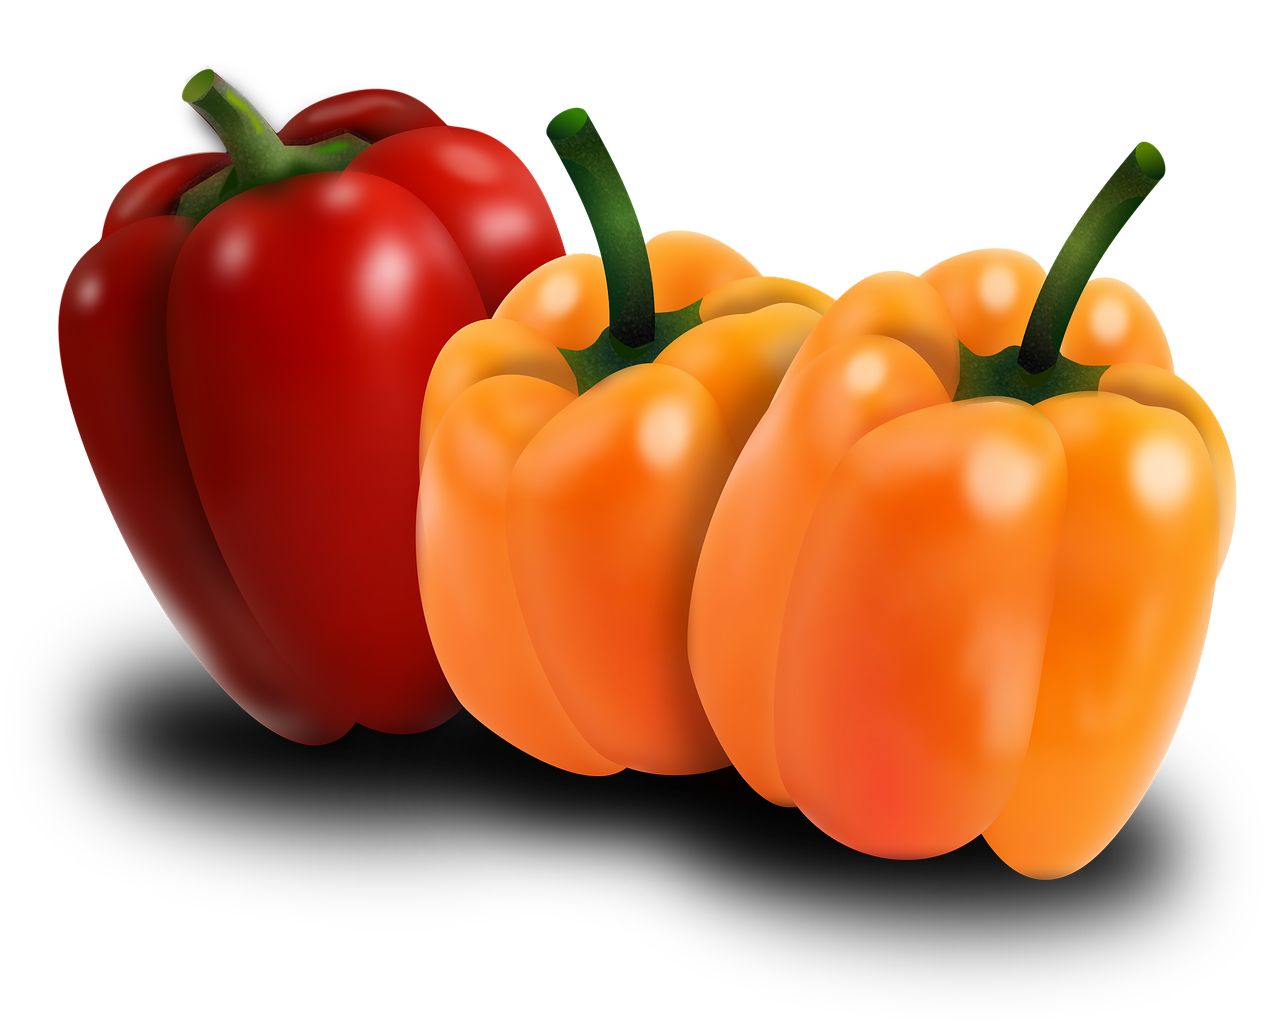 Food peppers horta . Vegetables clipart pimento